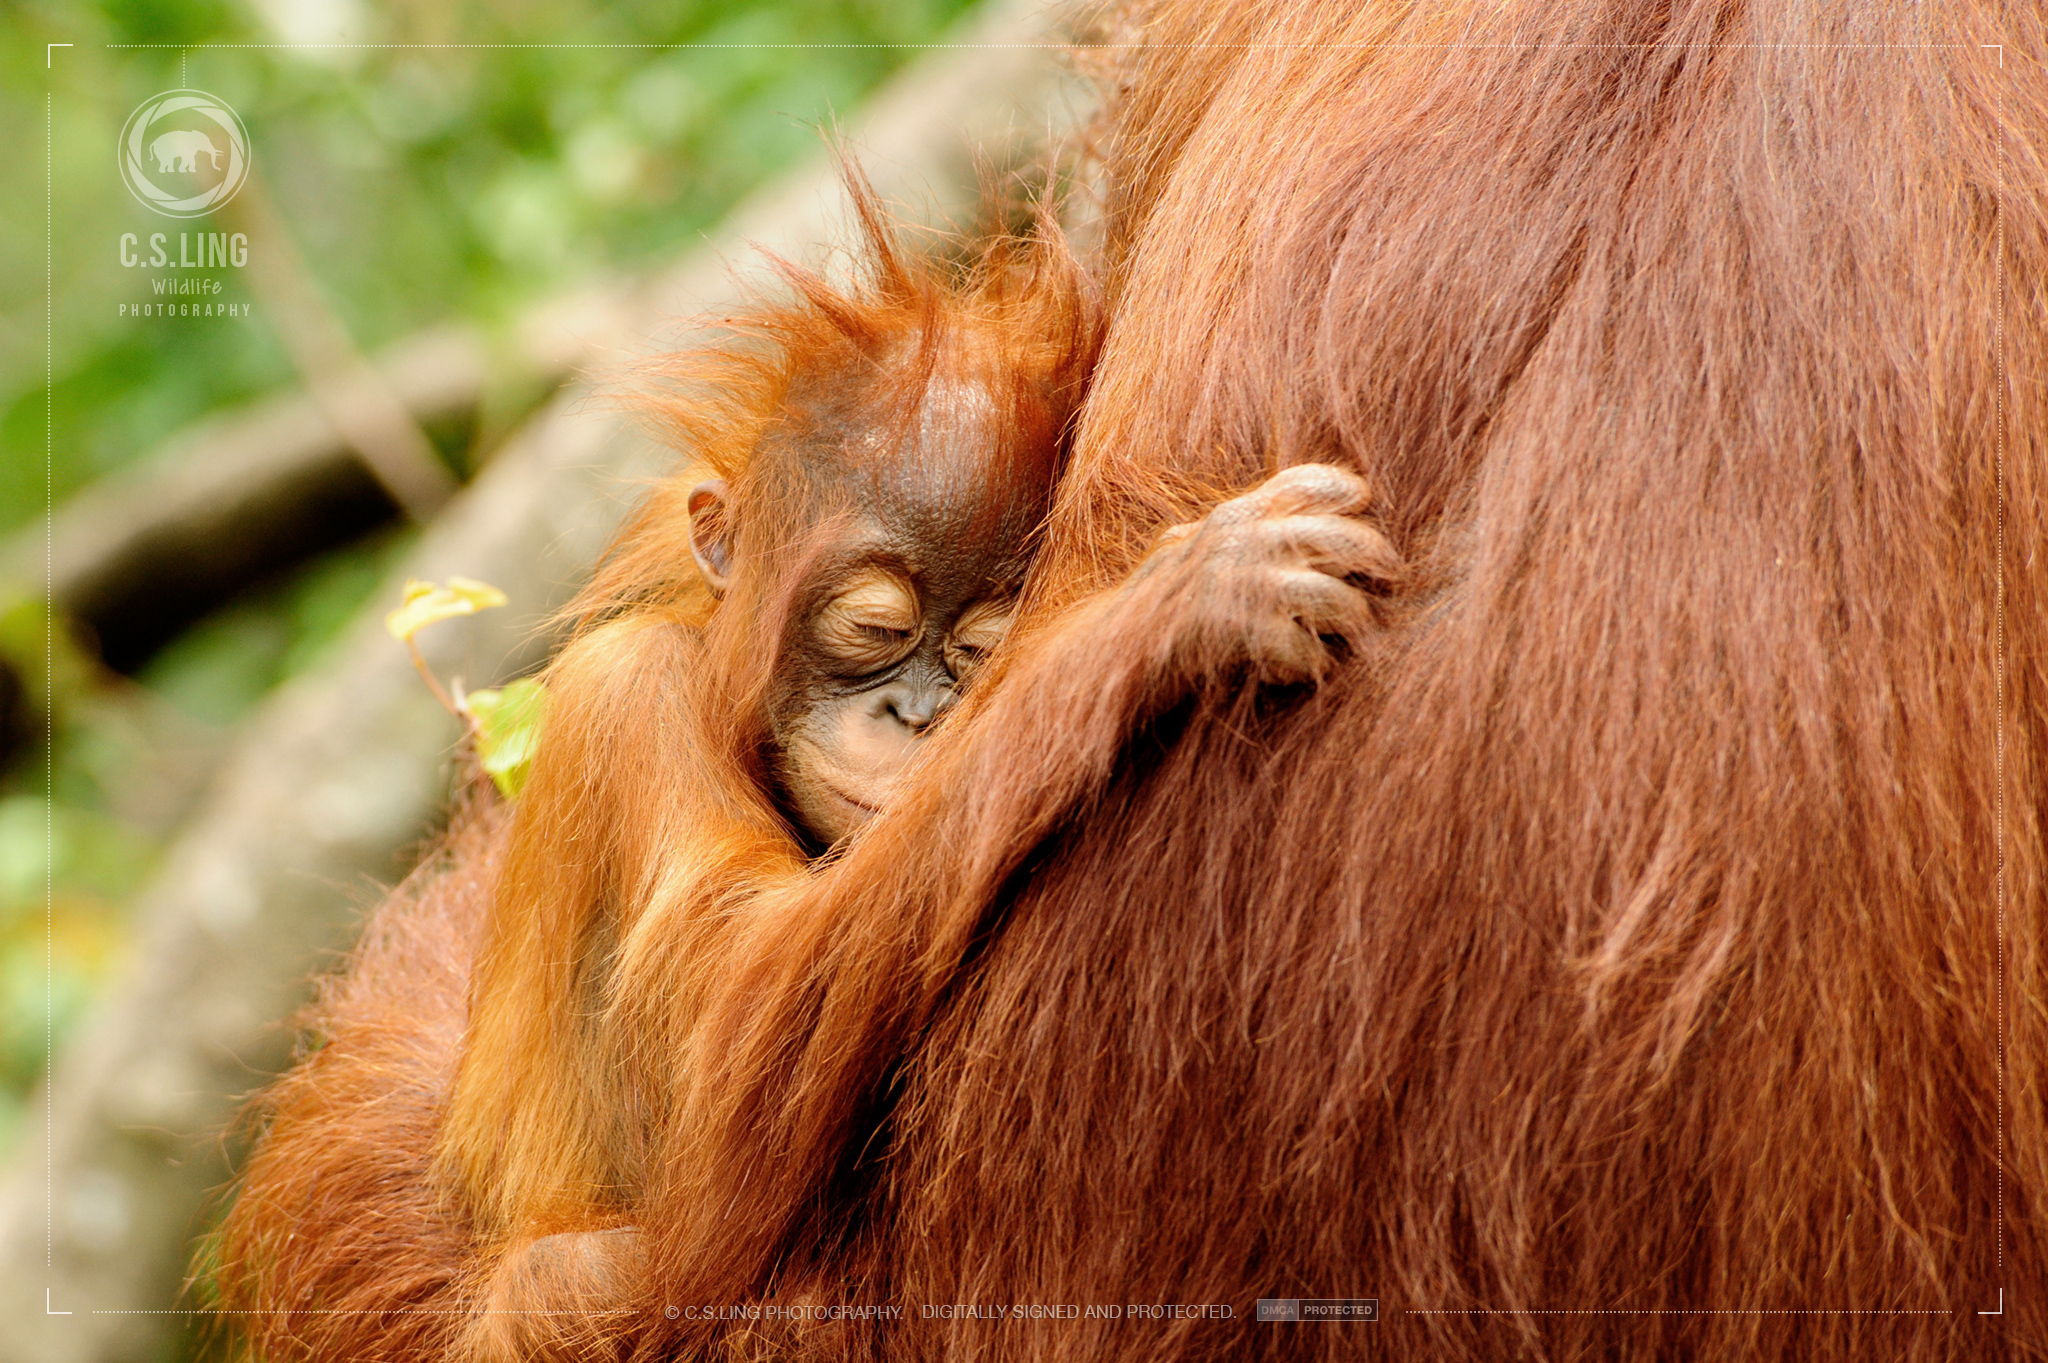 Endangered Orangutans Mother & Child | Best Wildlife Photos by C.S.Ling